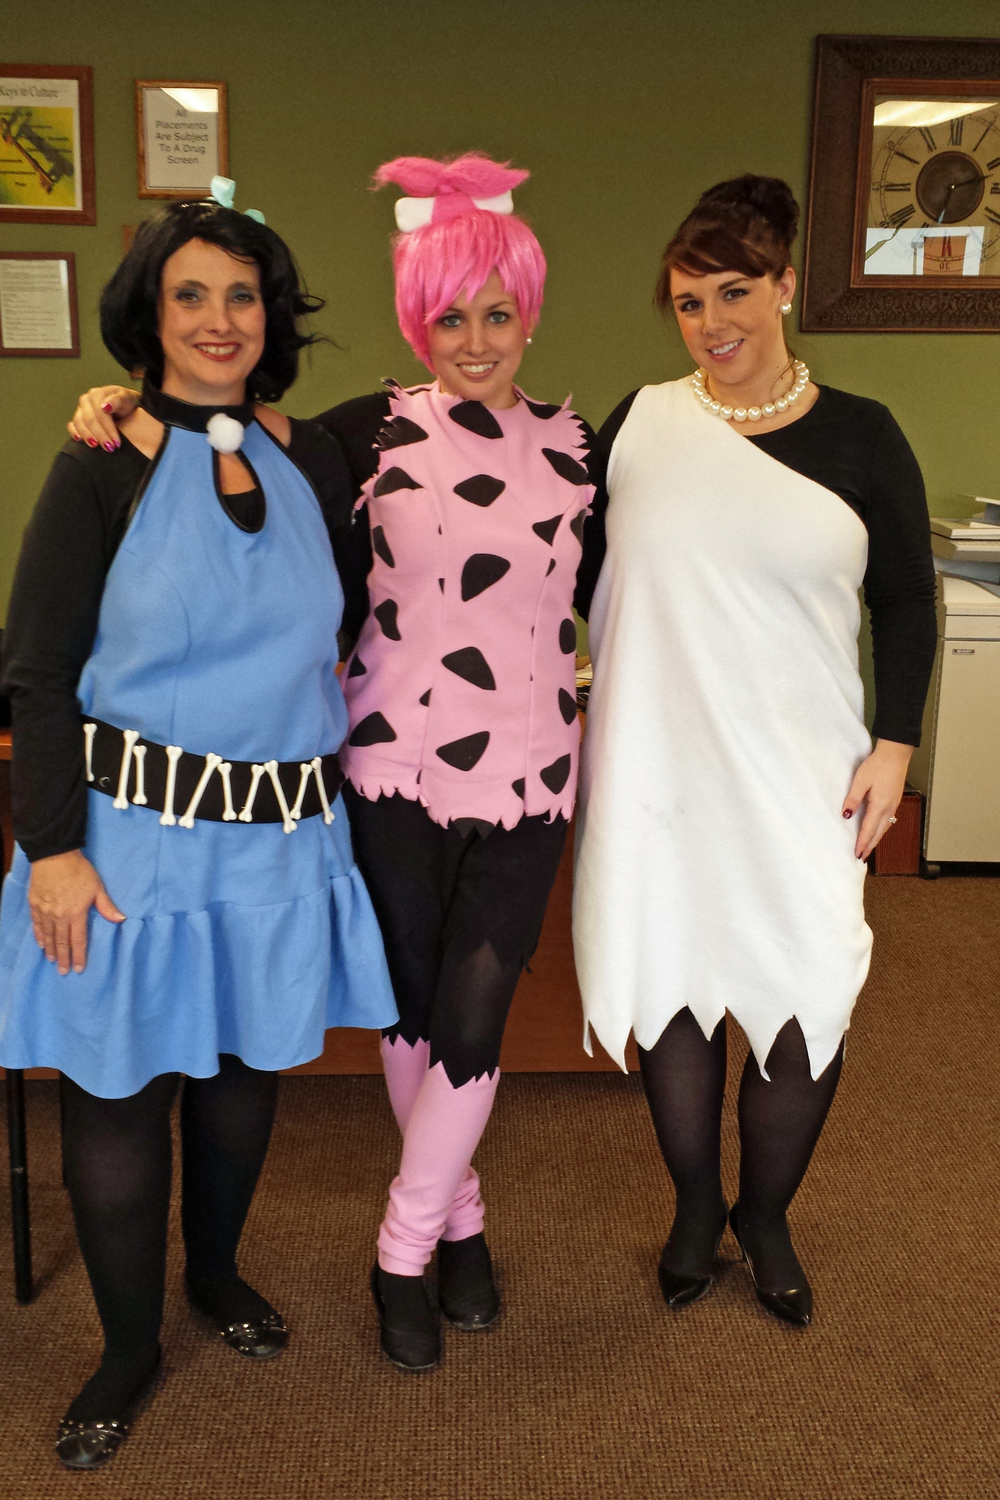 Columbus went back in time to honor the Flintstones. Tonya, Erica, & Sheila.